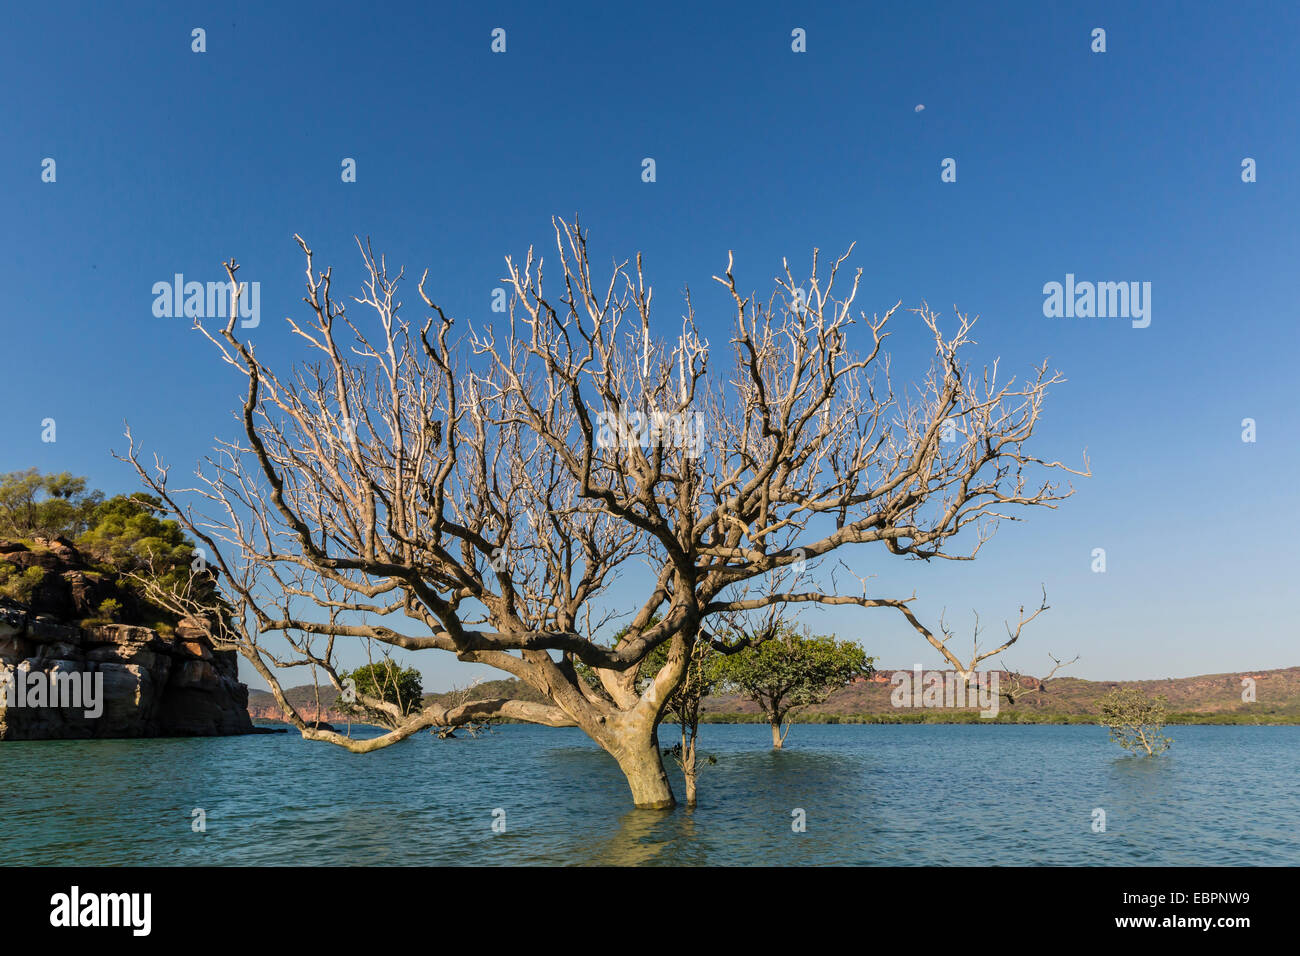 Extreme high tide covers trees in the Hunter River, Kimberley, Western Australia, Australia, Pacific - Stock Image